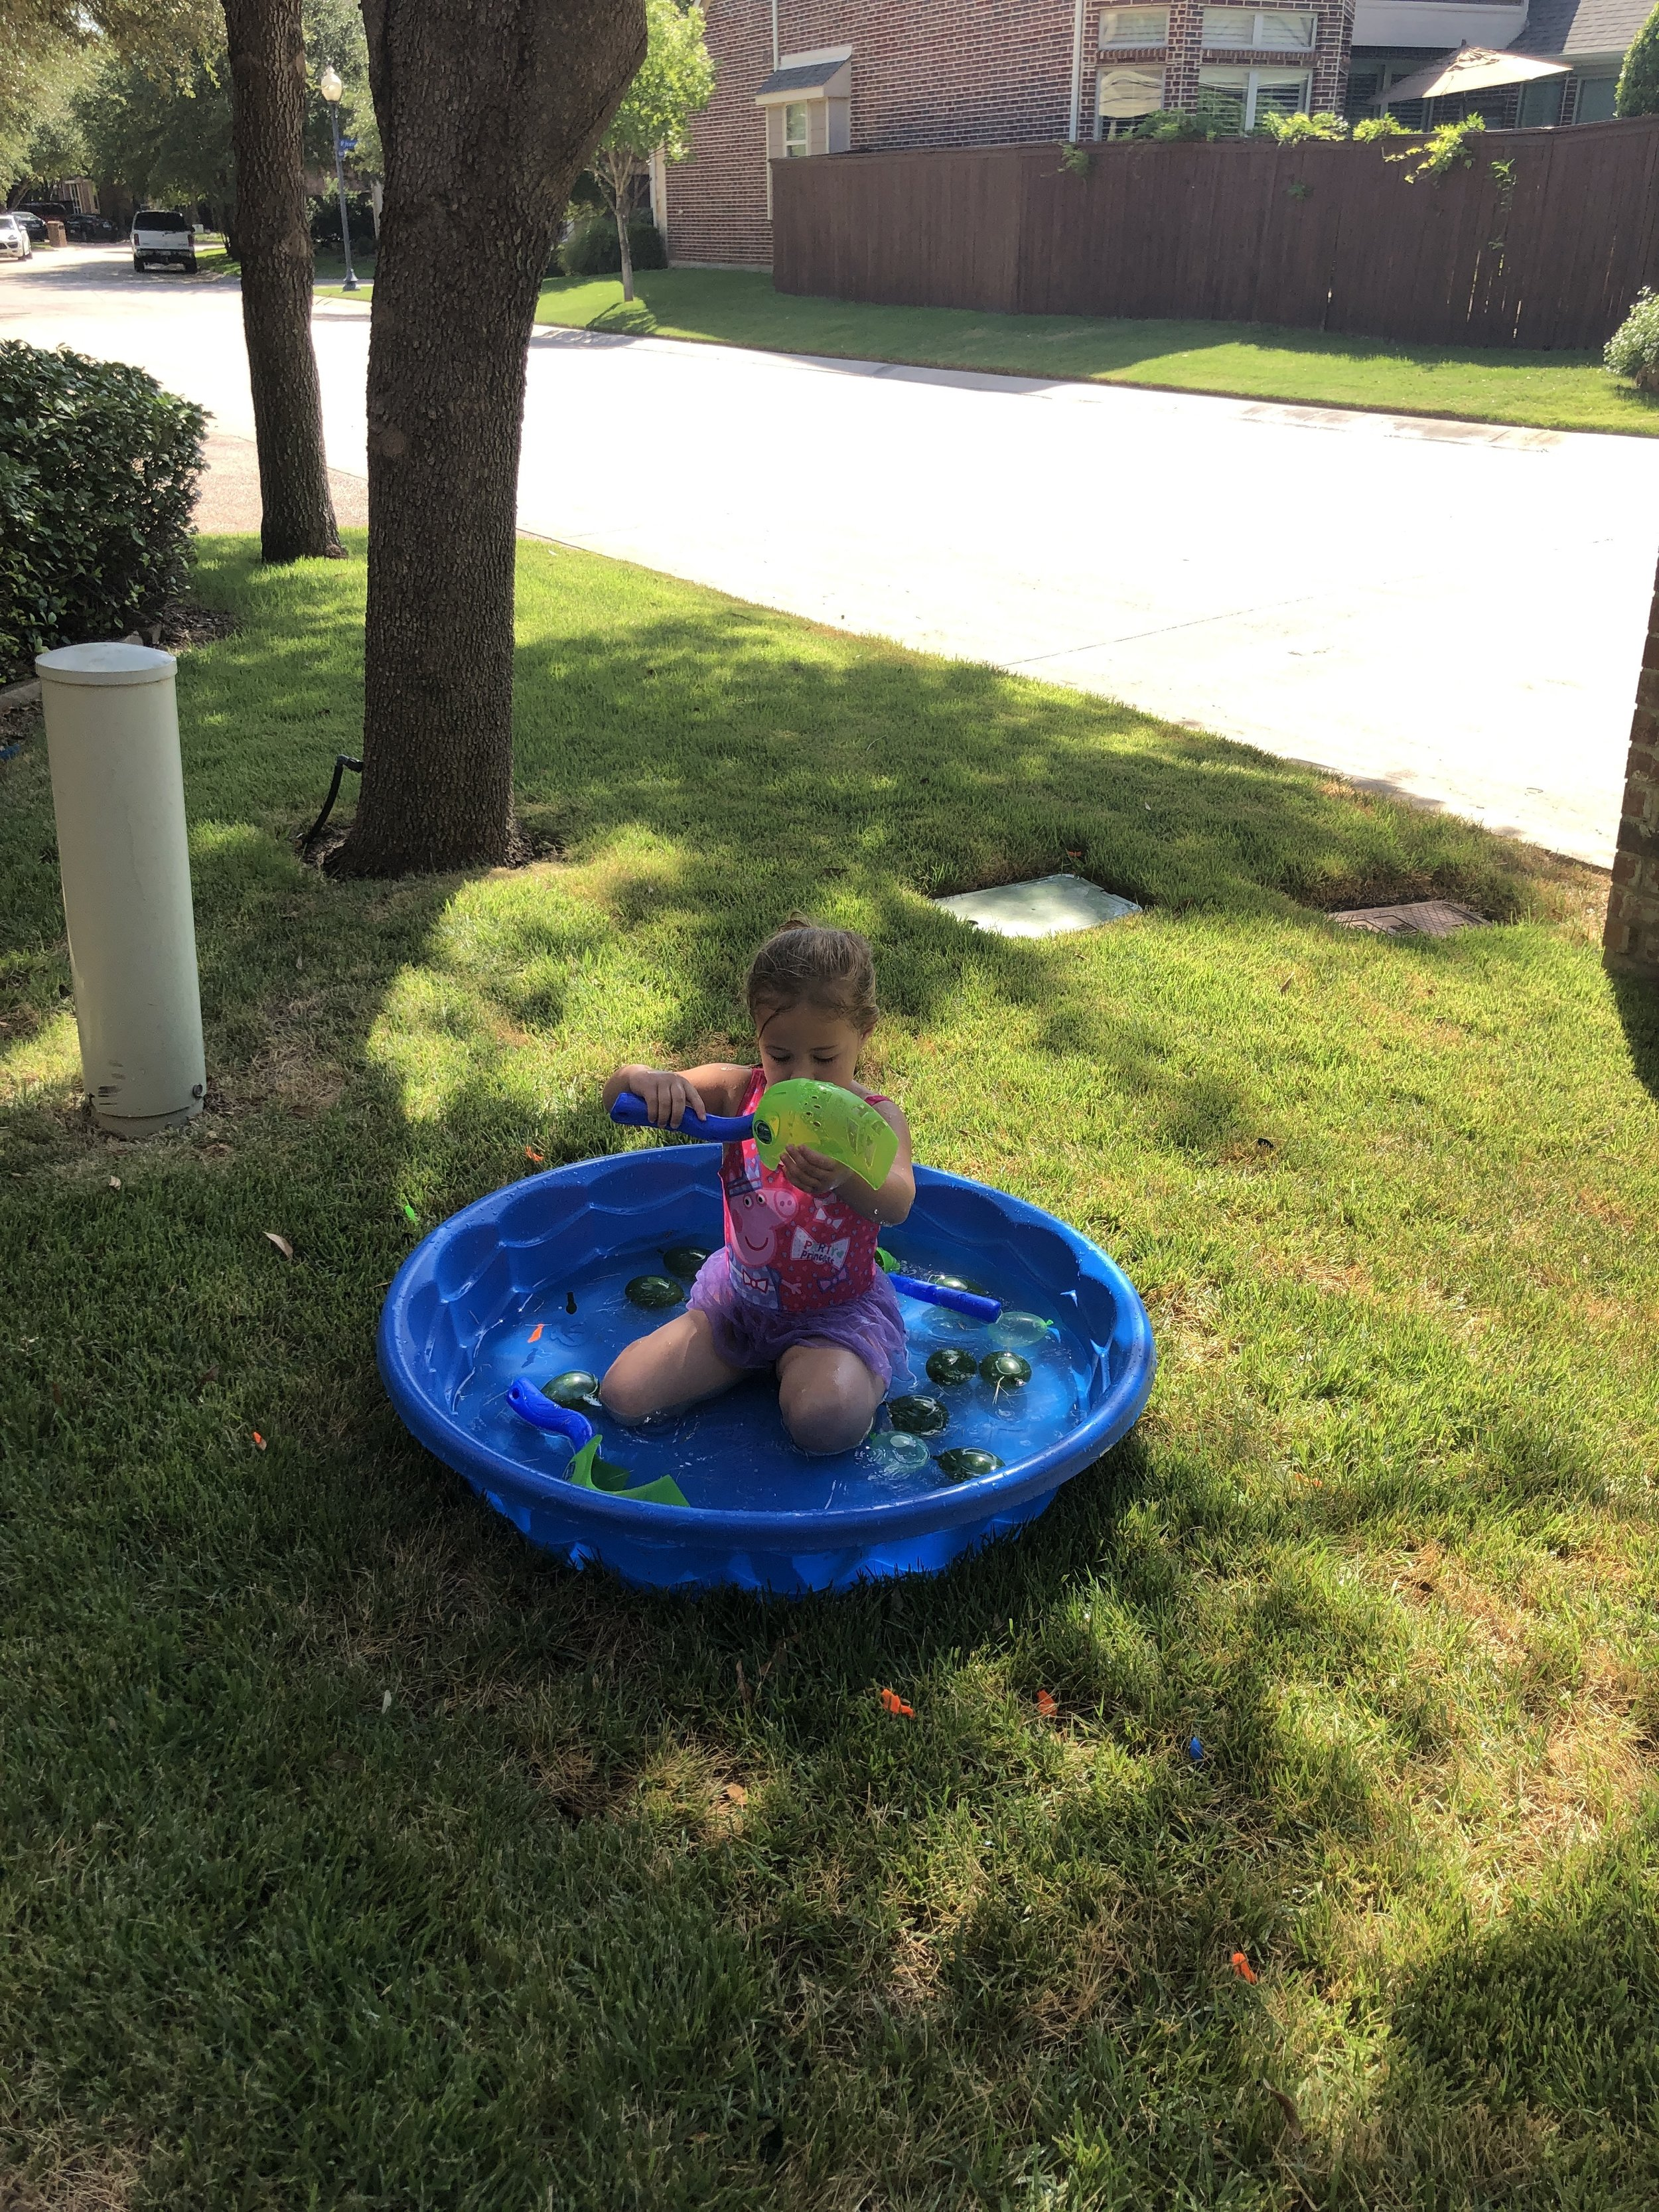 Oh, you know just swimming in the front yard...